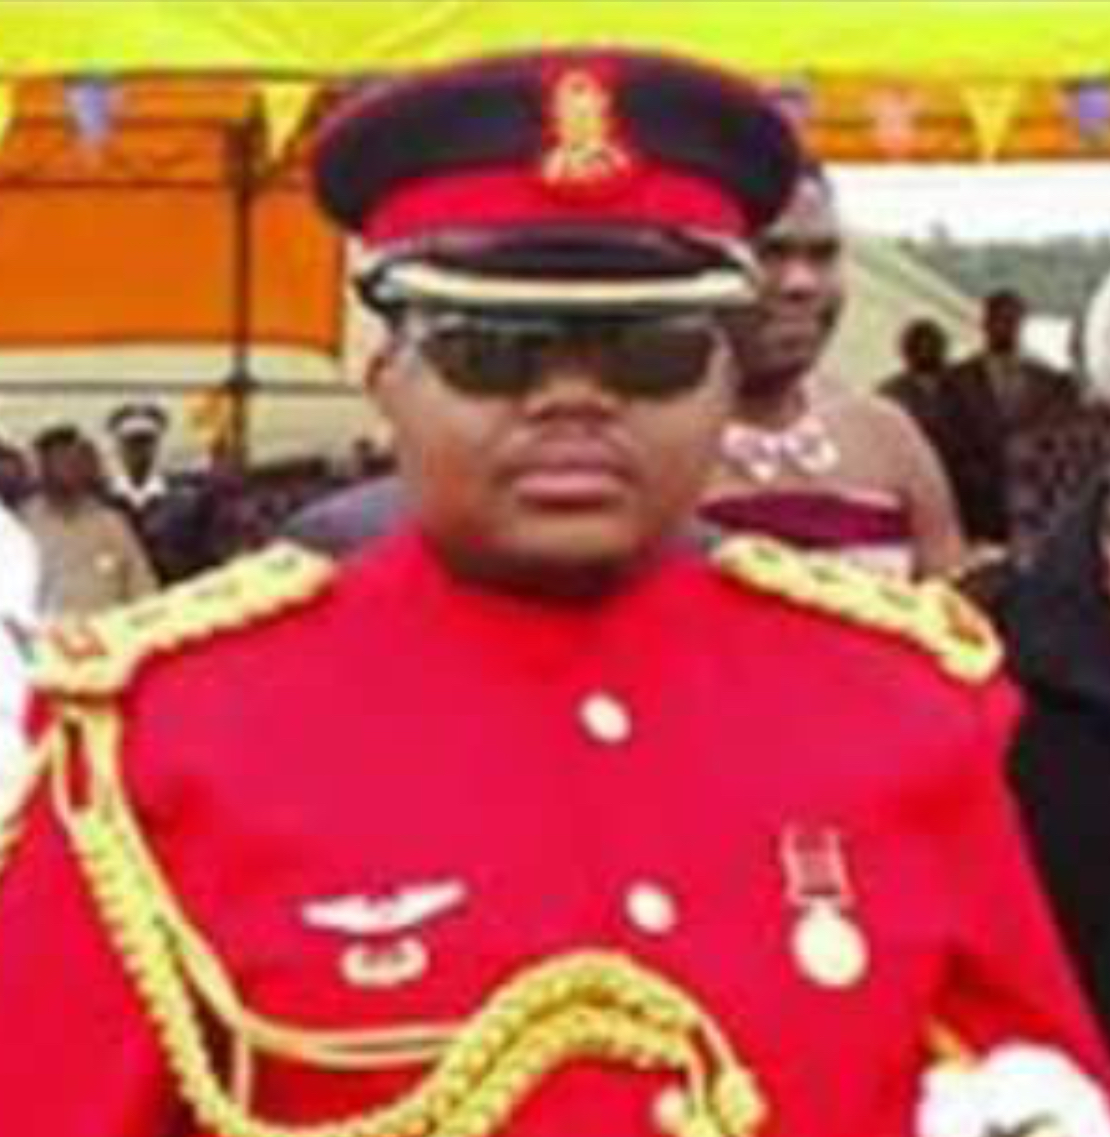 Prince Sicalo: Why I deployed soldiers at Mkhaliphi's Farm.